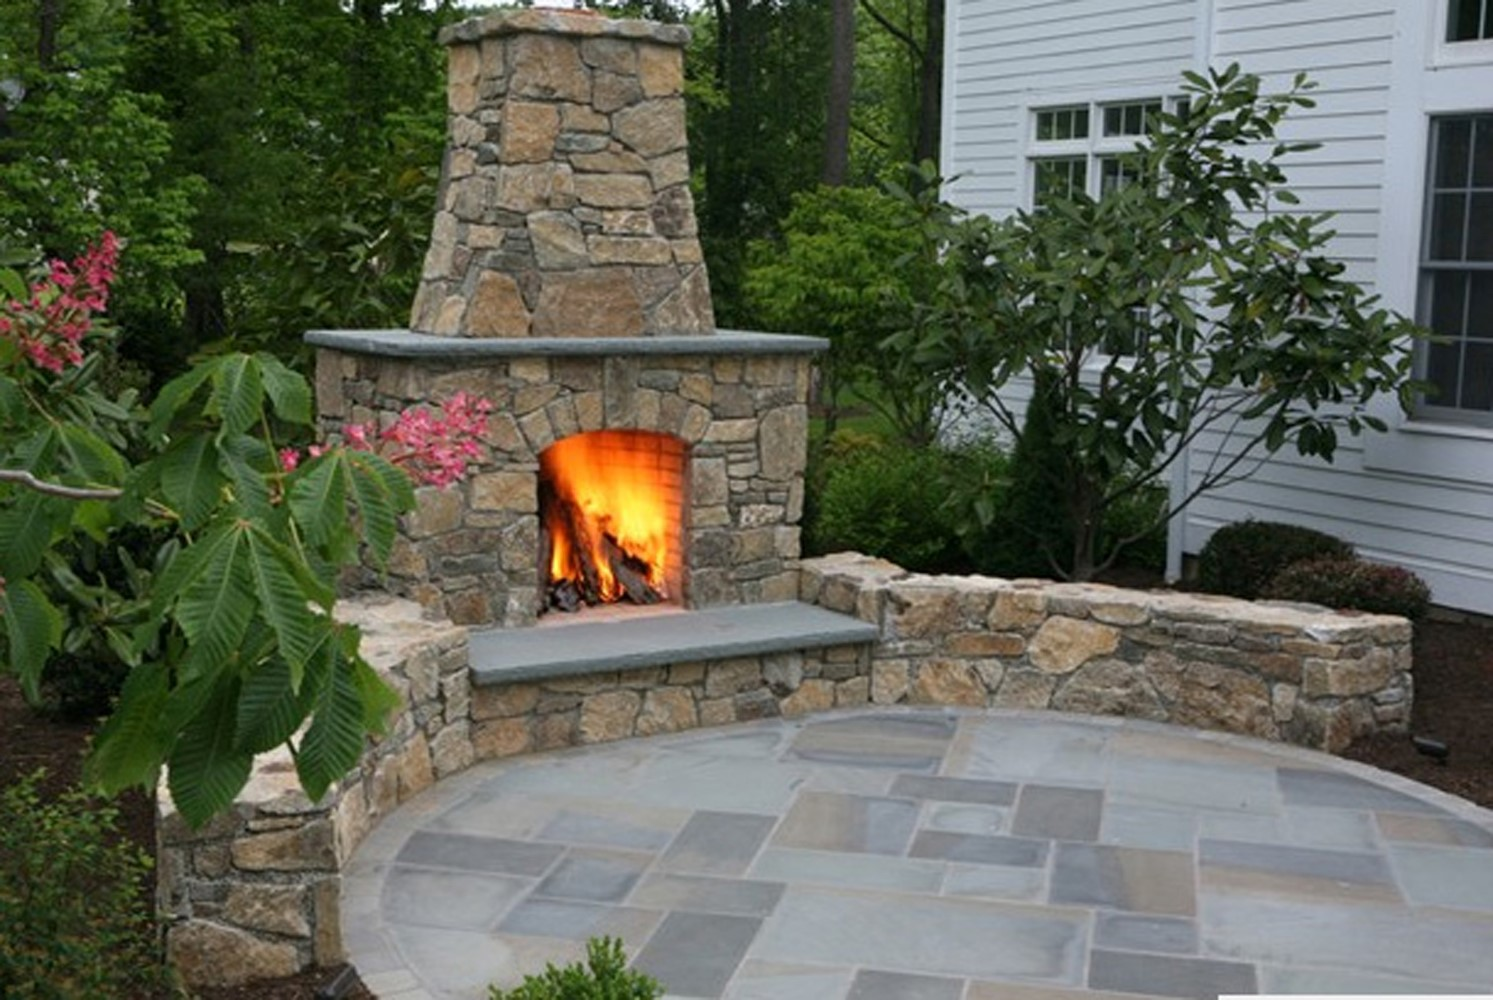 The Fireplace And Patio Outdoor Goods